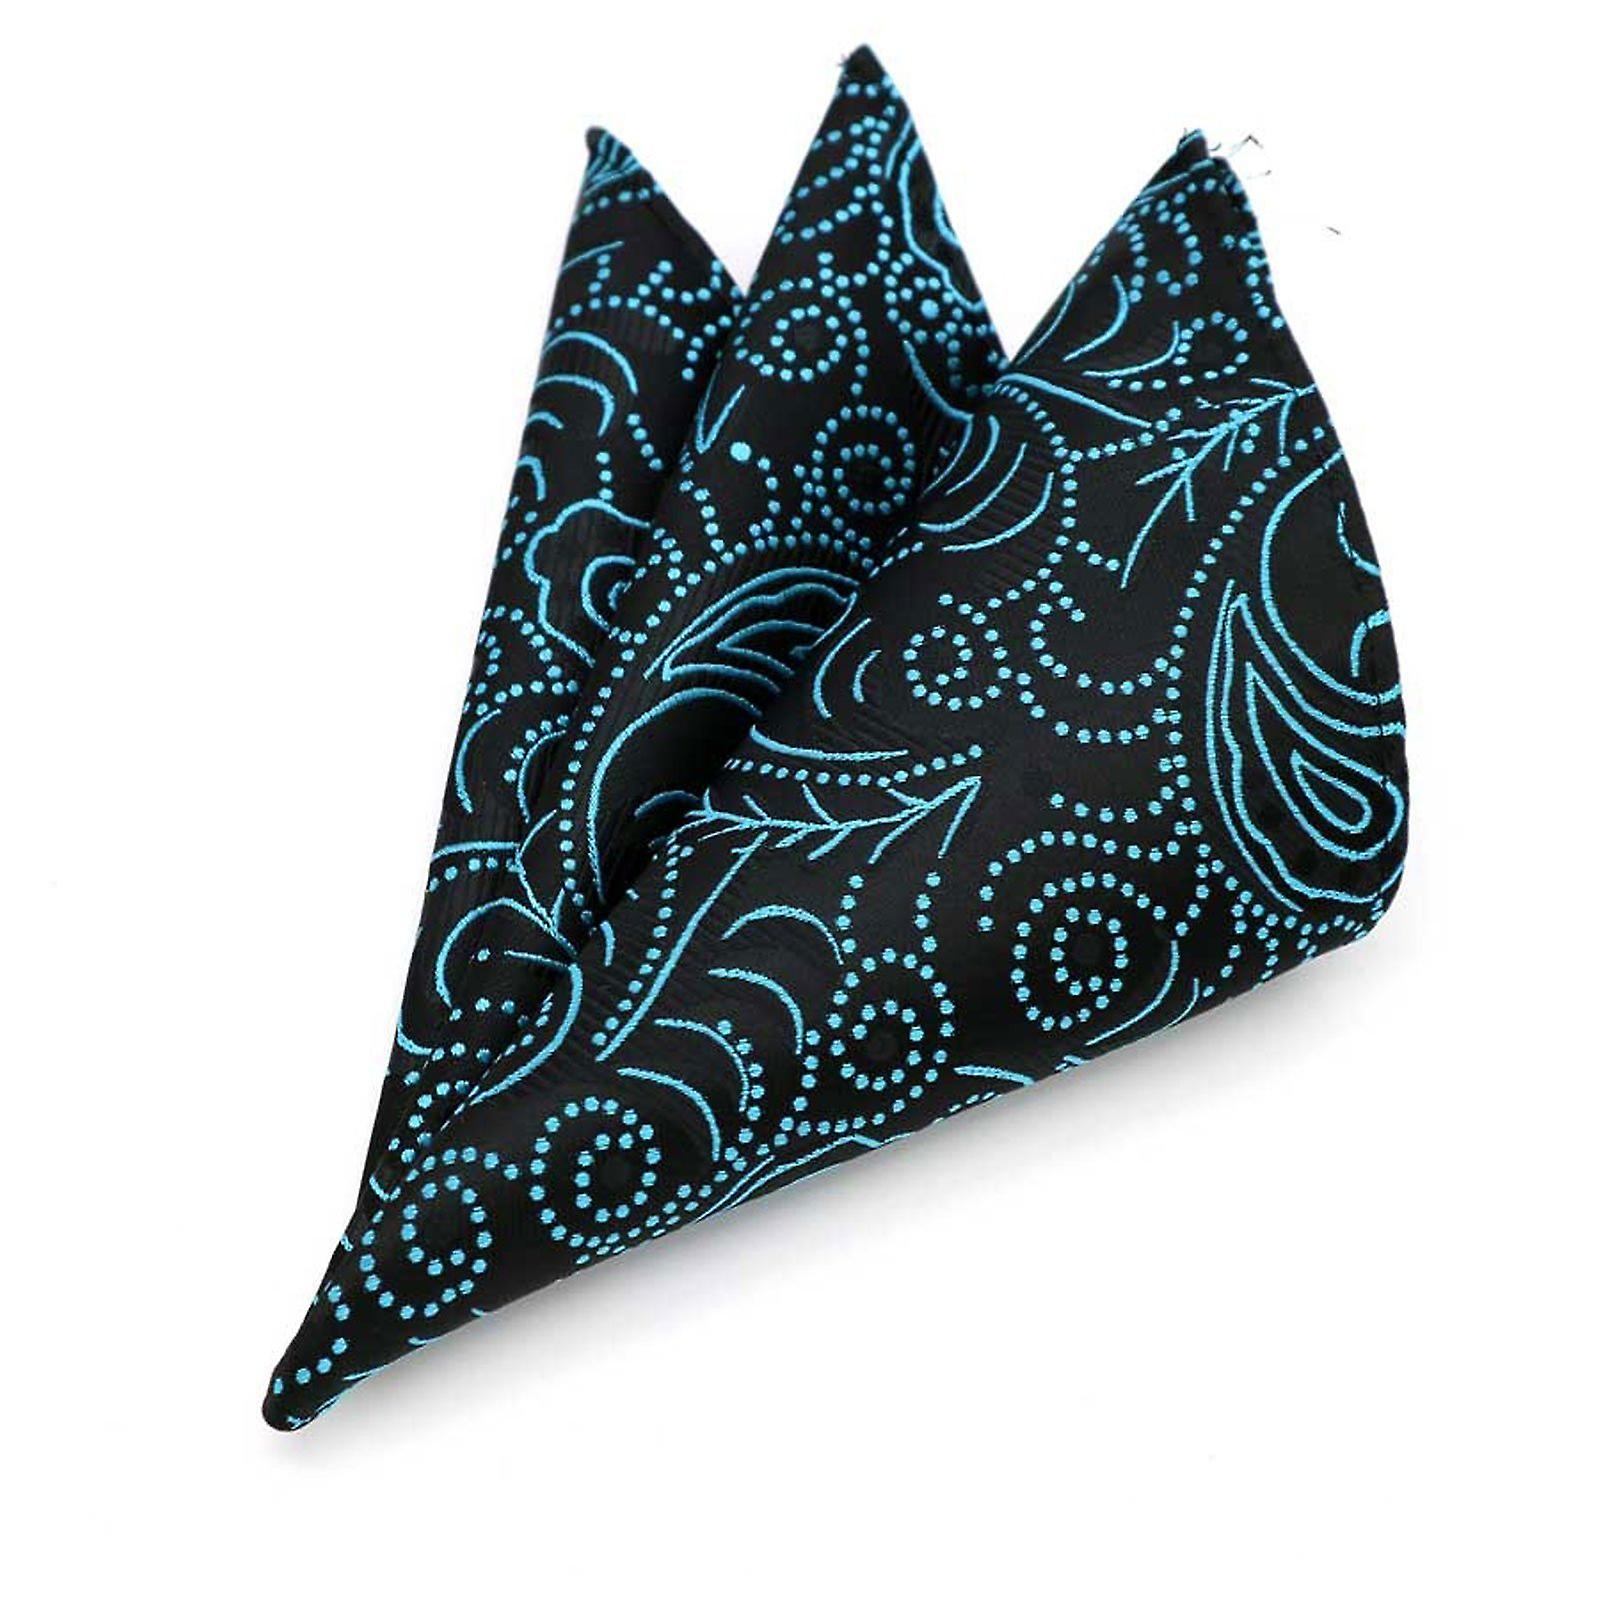 Bright turquoise green paisley pattern pocket square